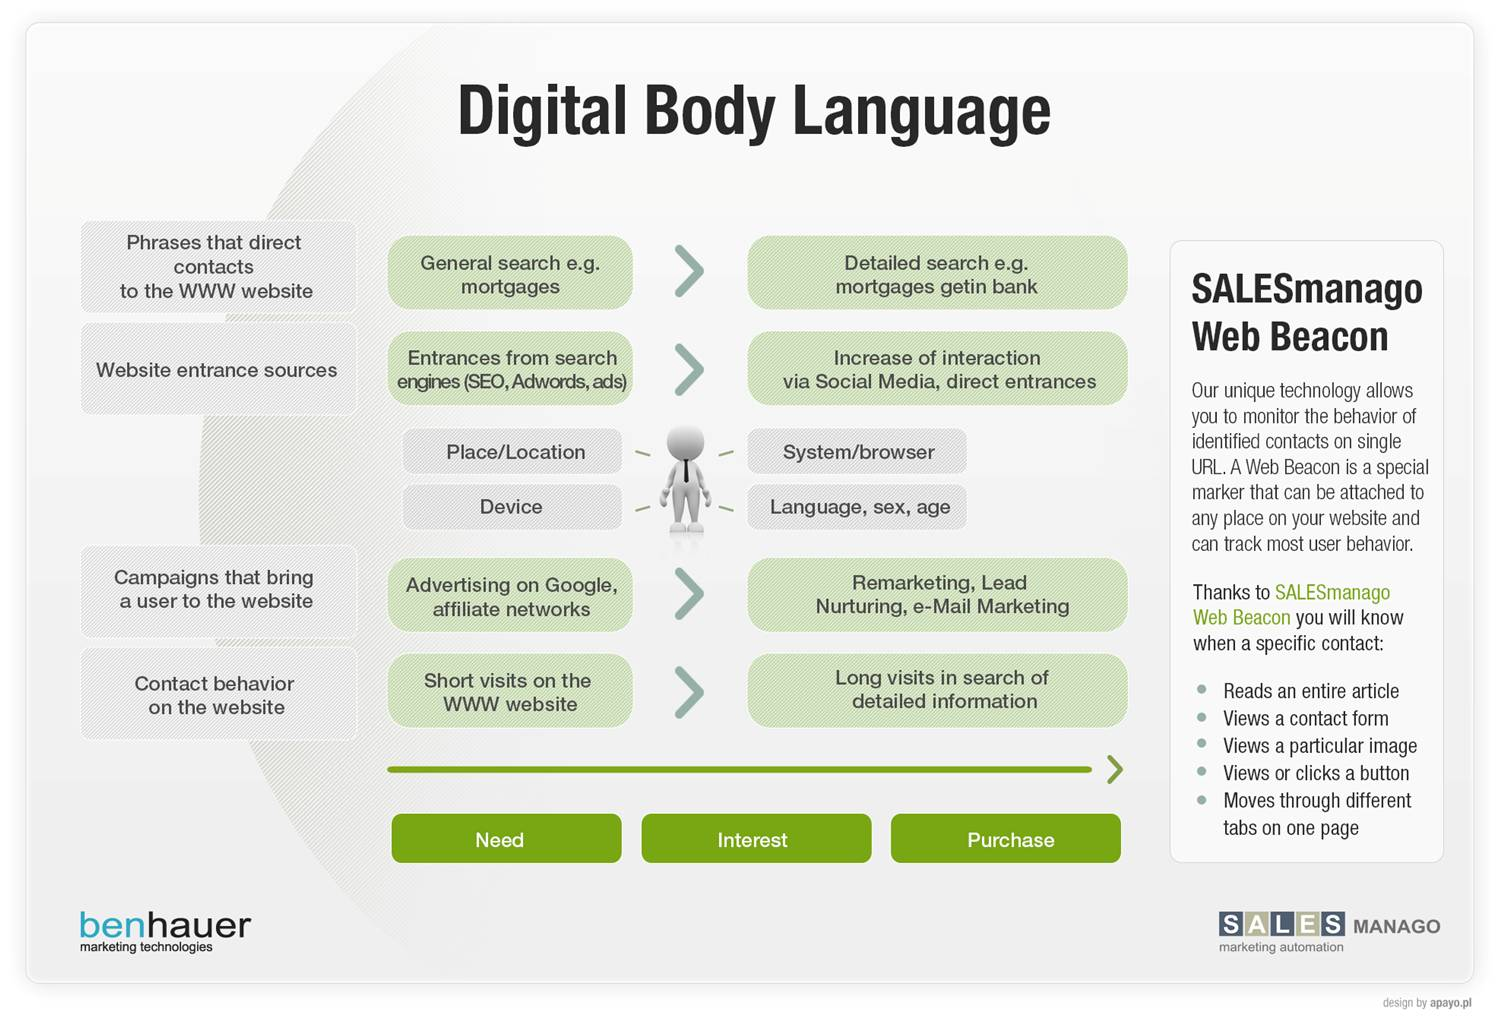 Digital Body Language